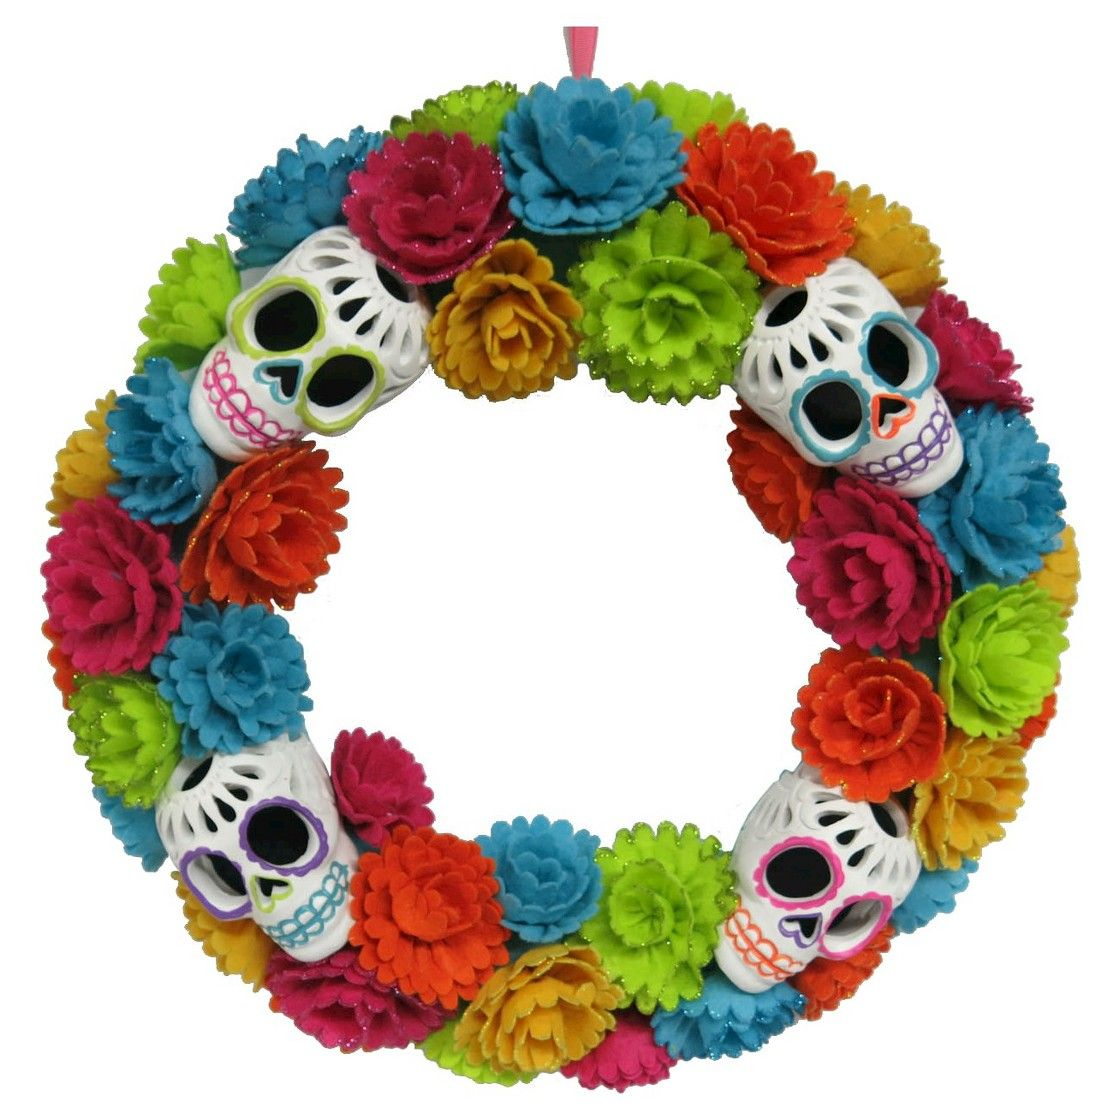 Halloween Wedding Altar: Day Of The Dead Flower And Skull Wreath